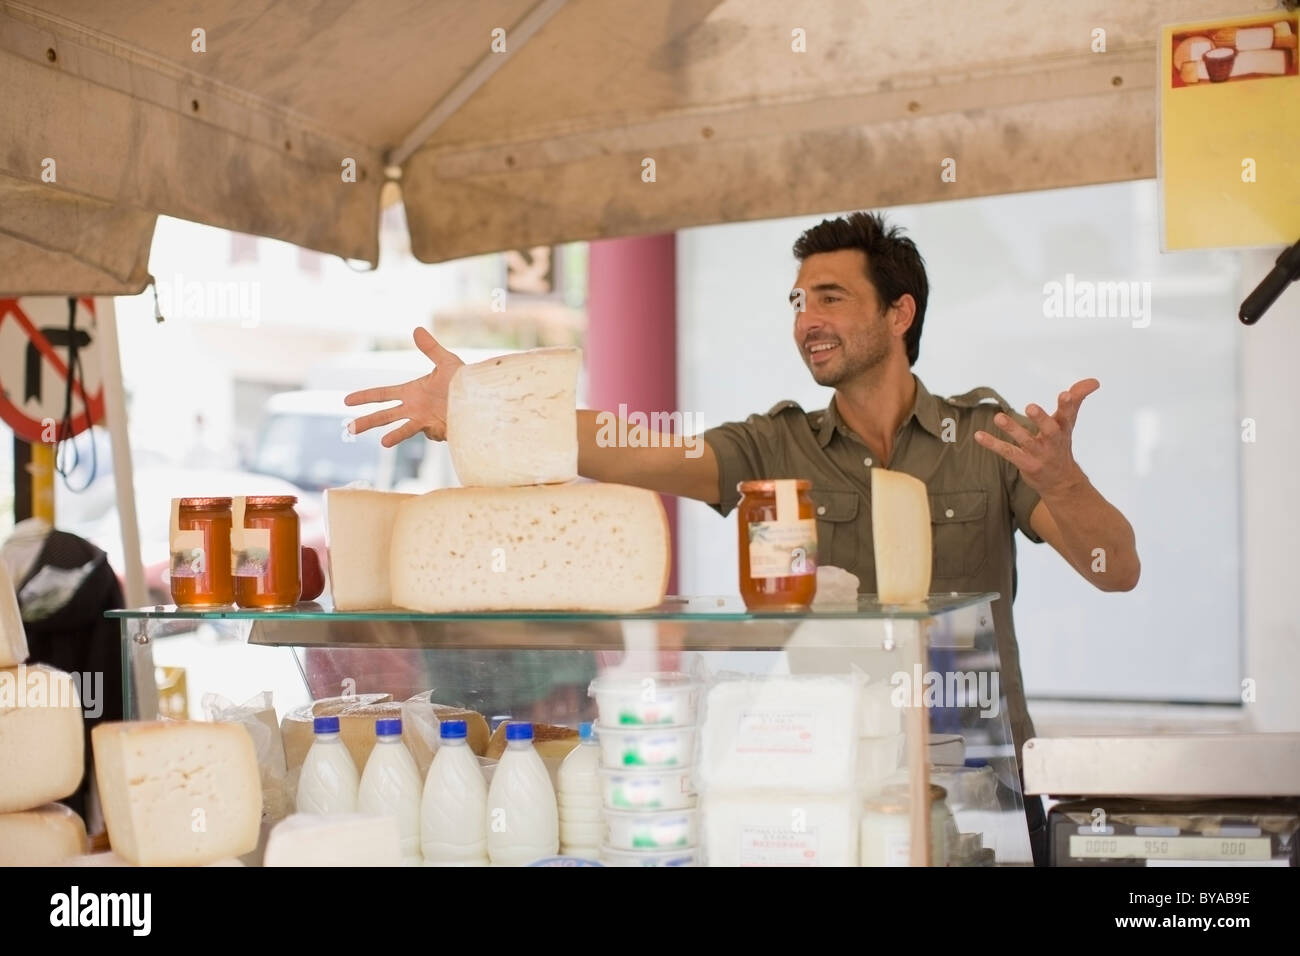 Man selling dairy products - Stock Image